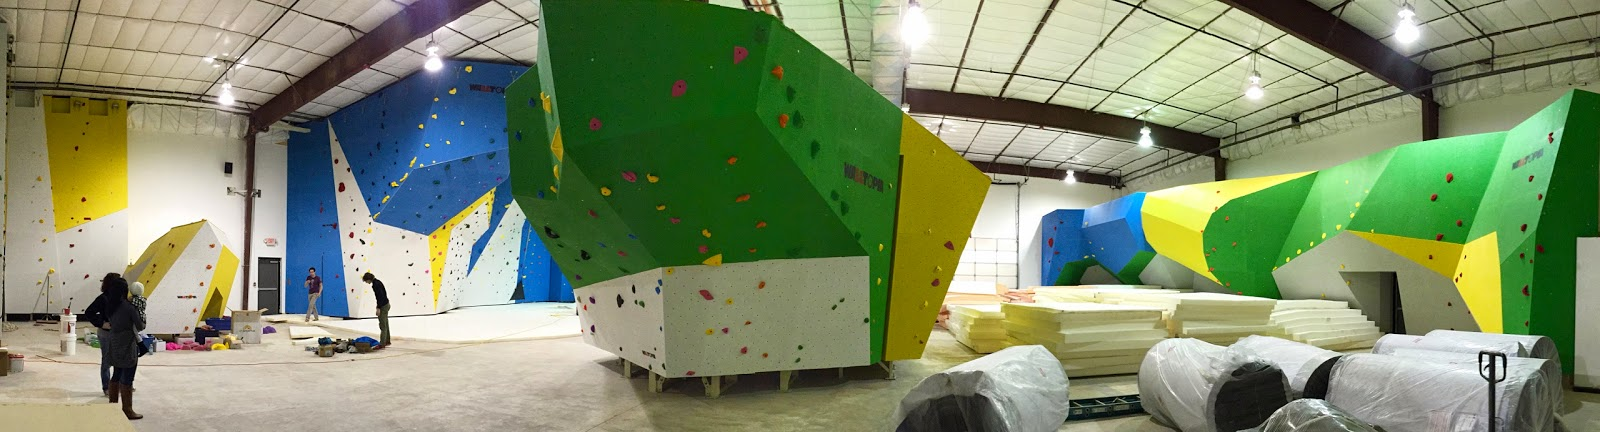 GIVEAWAY: Climb at Climb Up in Norman, OK!